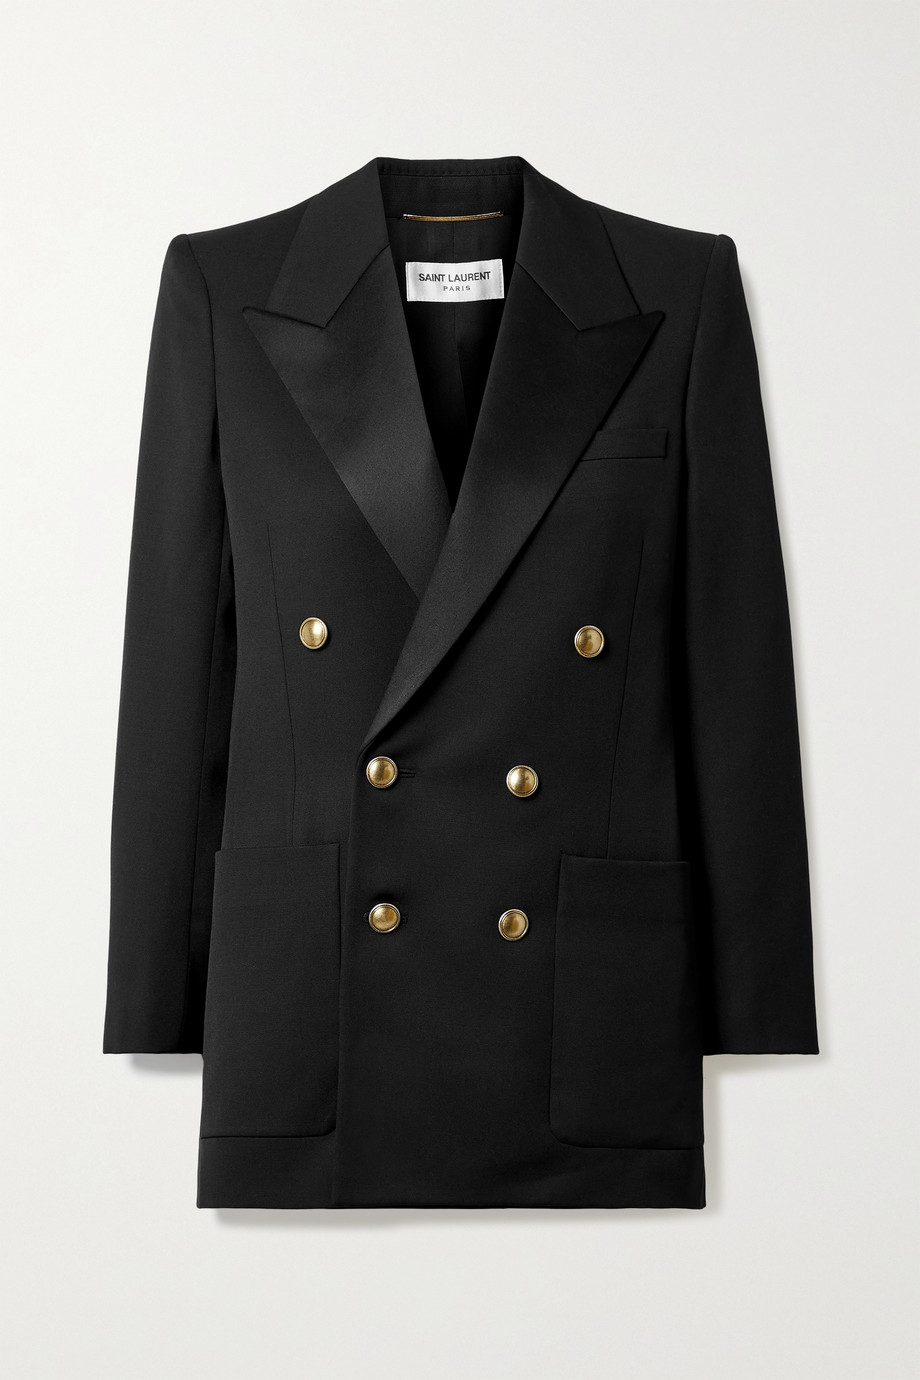 SAINT LAURENT Double-breasted satin and grain de poudre wool blazer